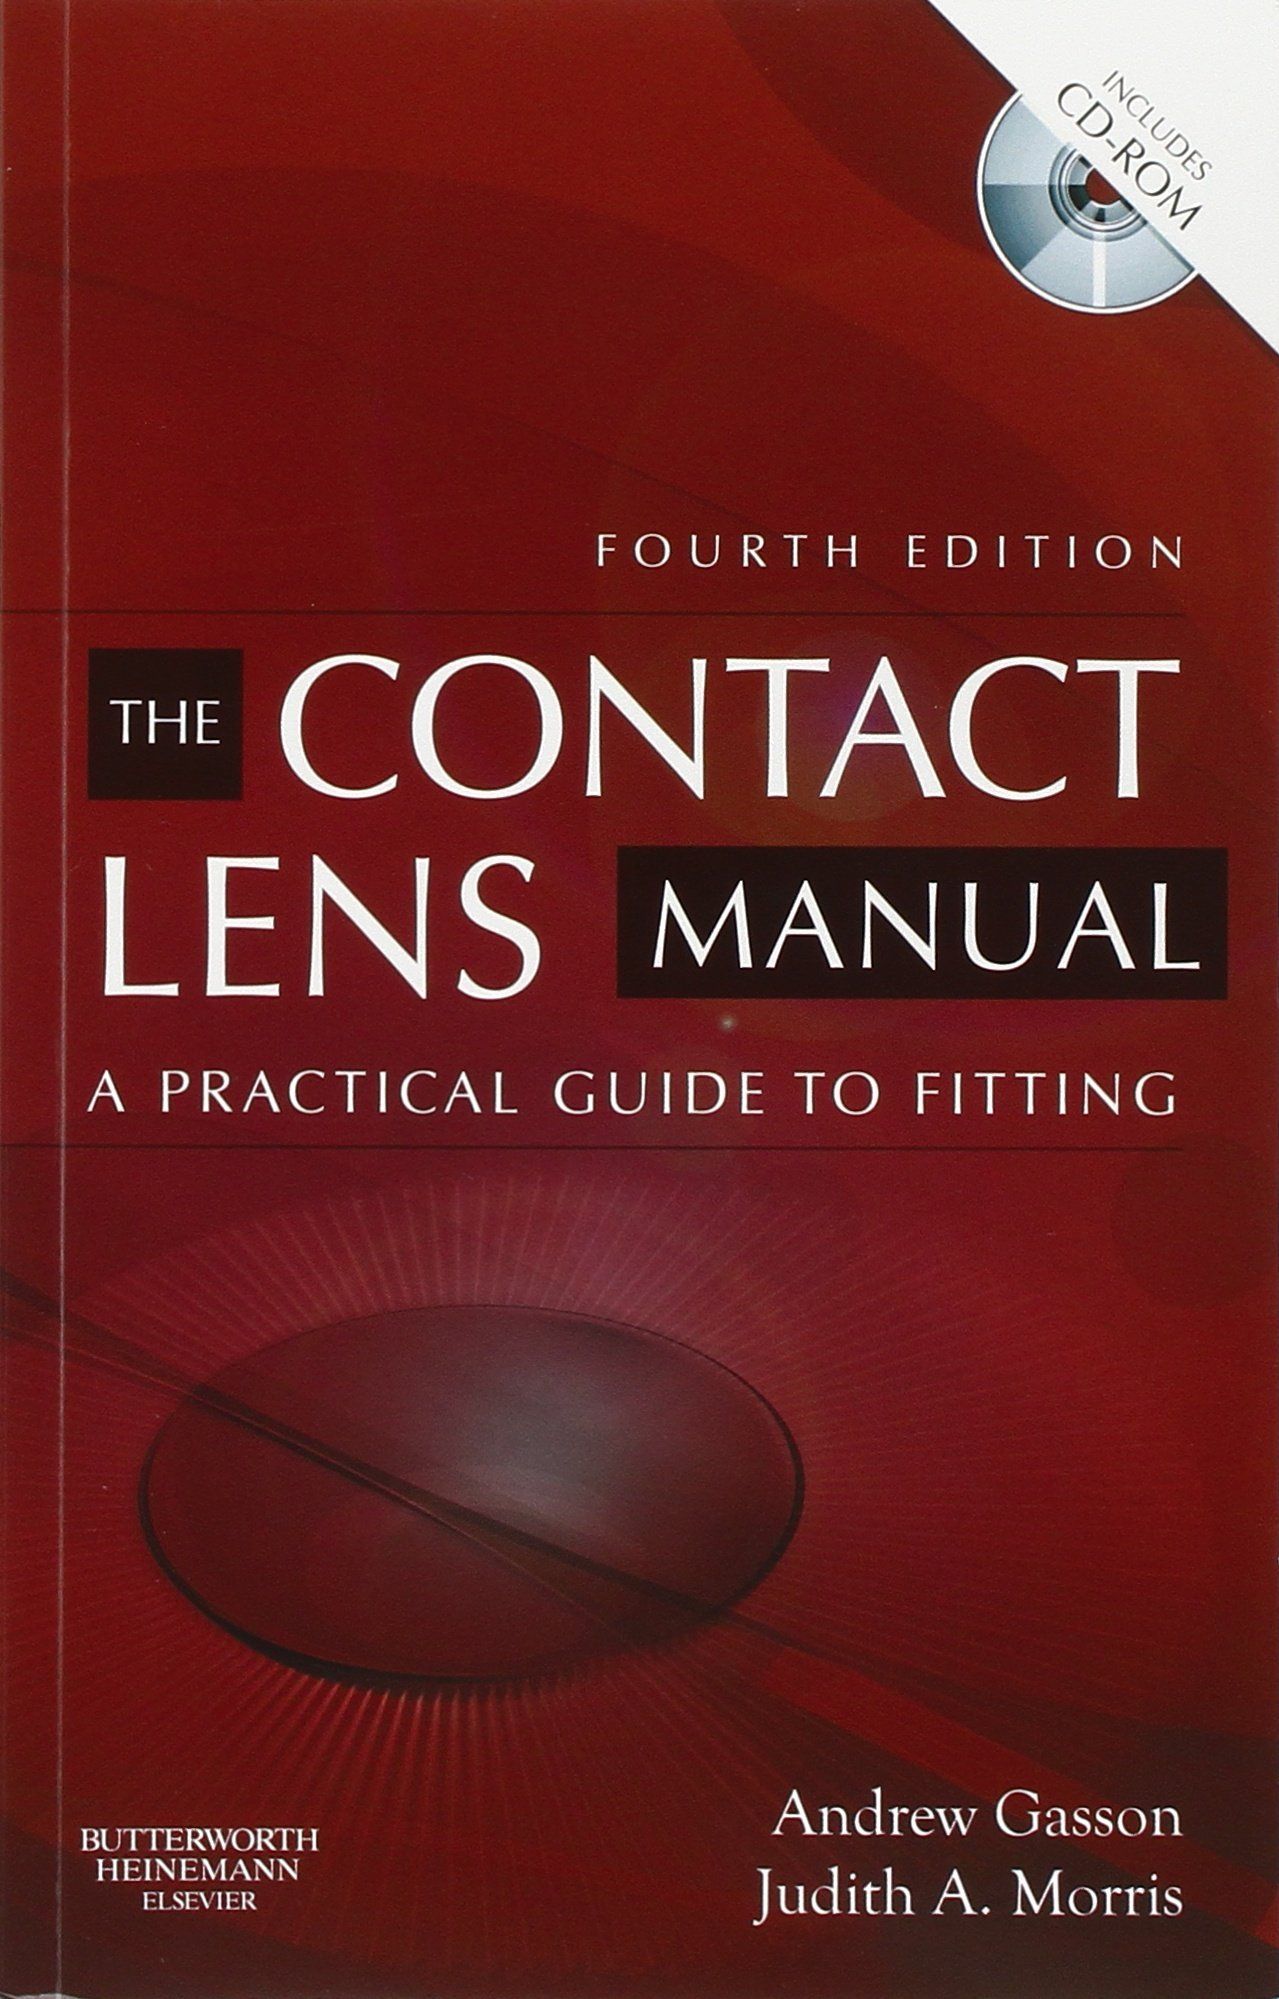 The contact lens manual: a practical guide to fitting, 4e.